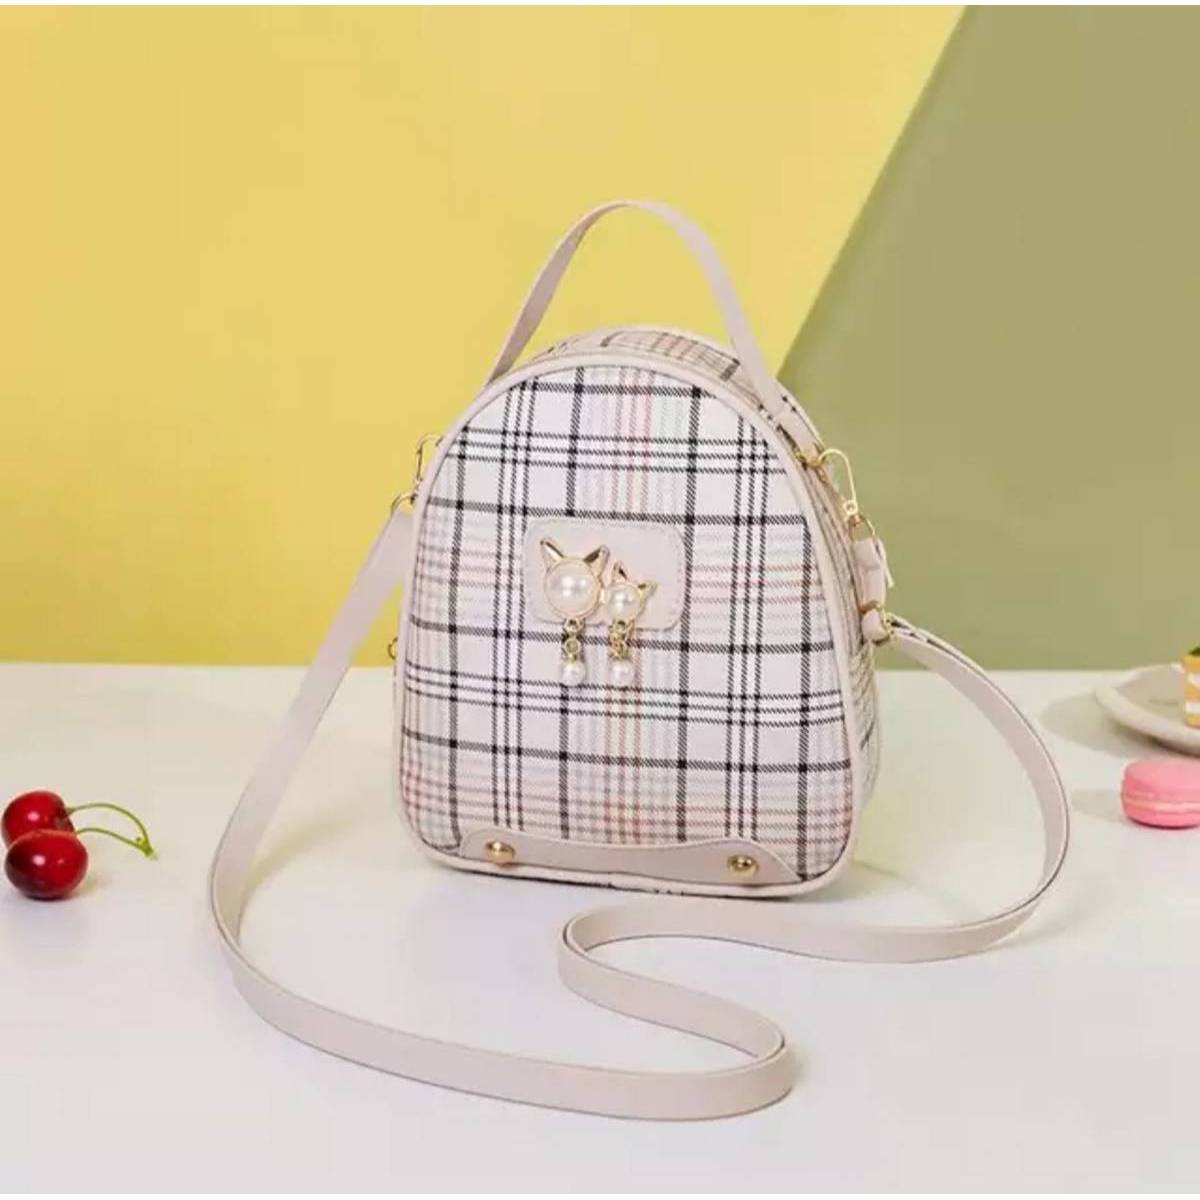 3 Styles Use Check Print Mini Bag For Girl's(Backpack+Cross Body Shoulder+Hand Carry Bag)